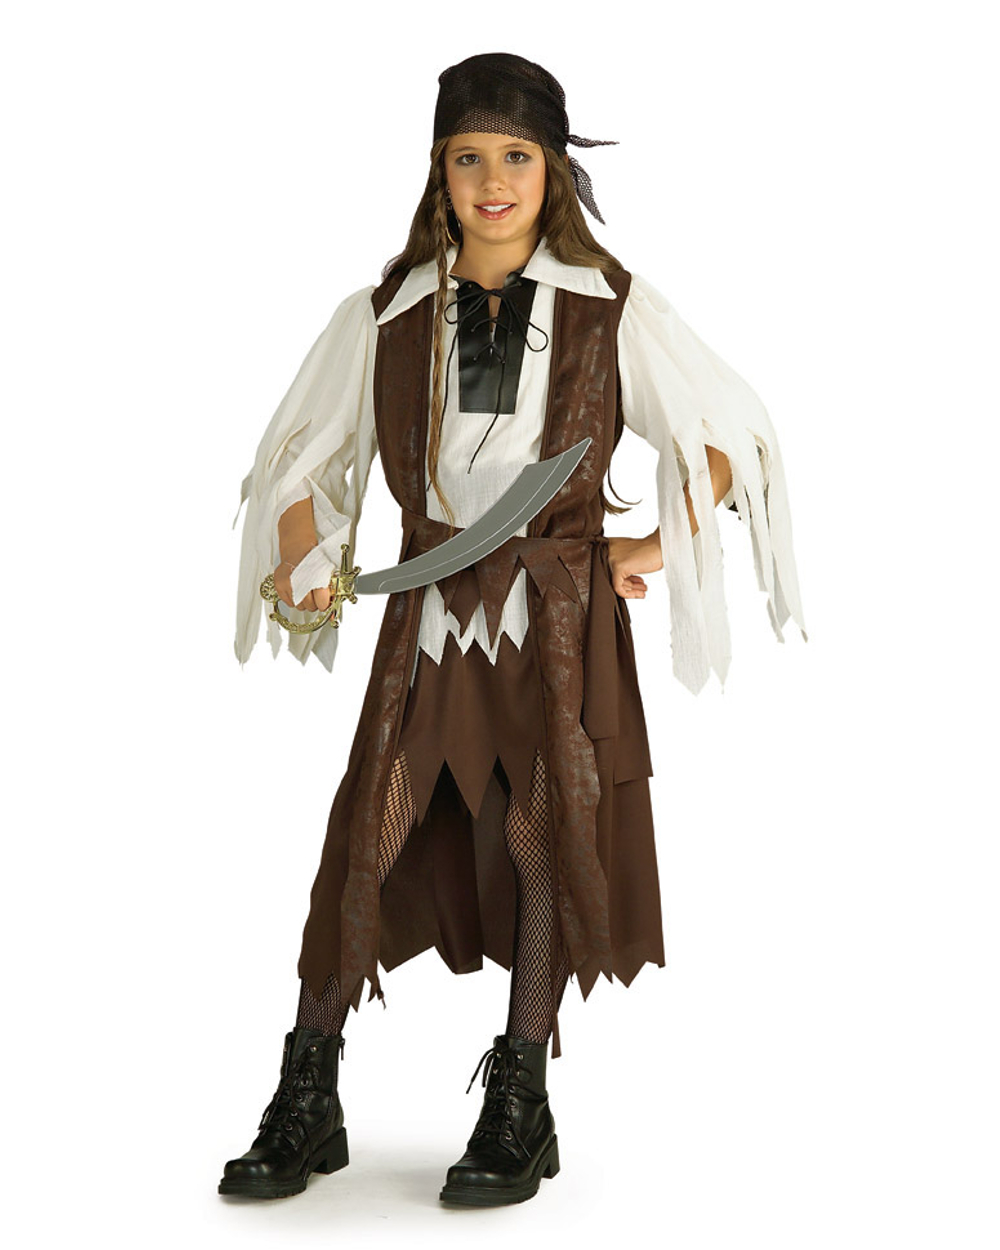 Girls Caribbean Princess Buccaneer Scalawag Pirate Captain Costume by Rubies Costume Co